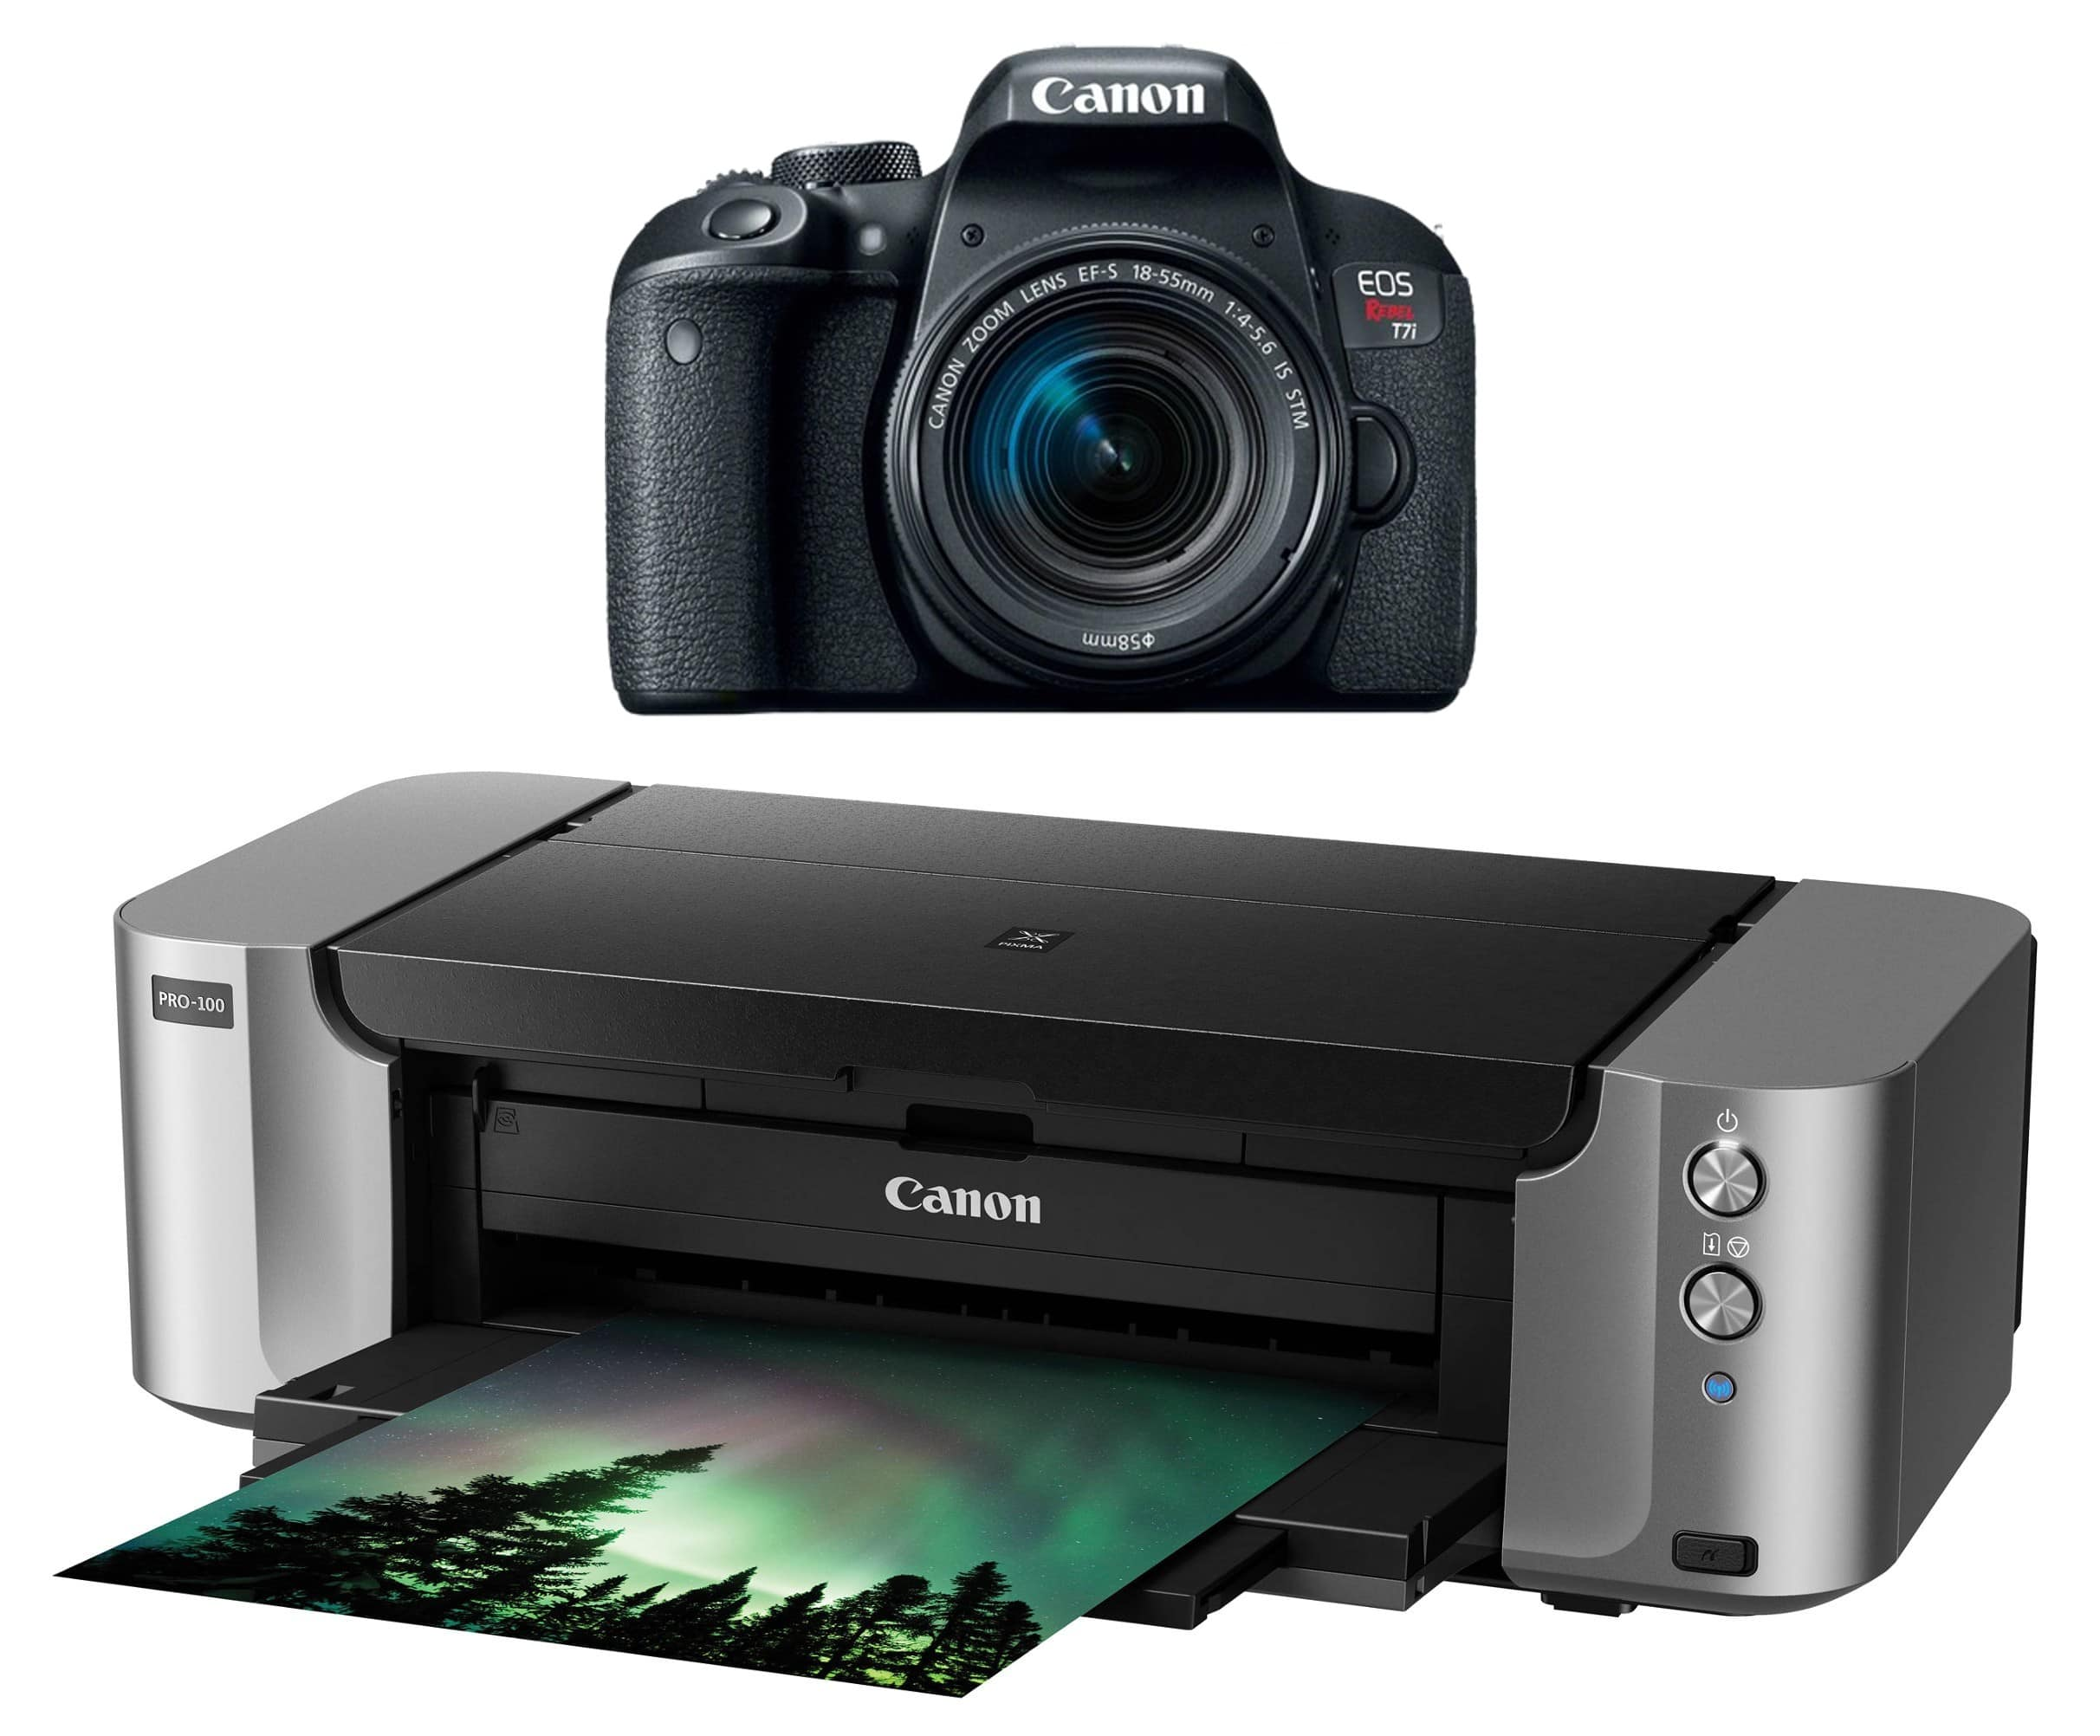 Canon EOS Rebel T7i DSLR Camera With 18-55mm STM Lens Kit And Pixma Pro-100 Printer for $599.99 AR + Free Shipping